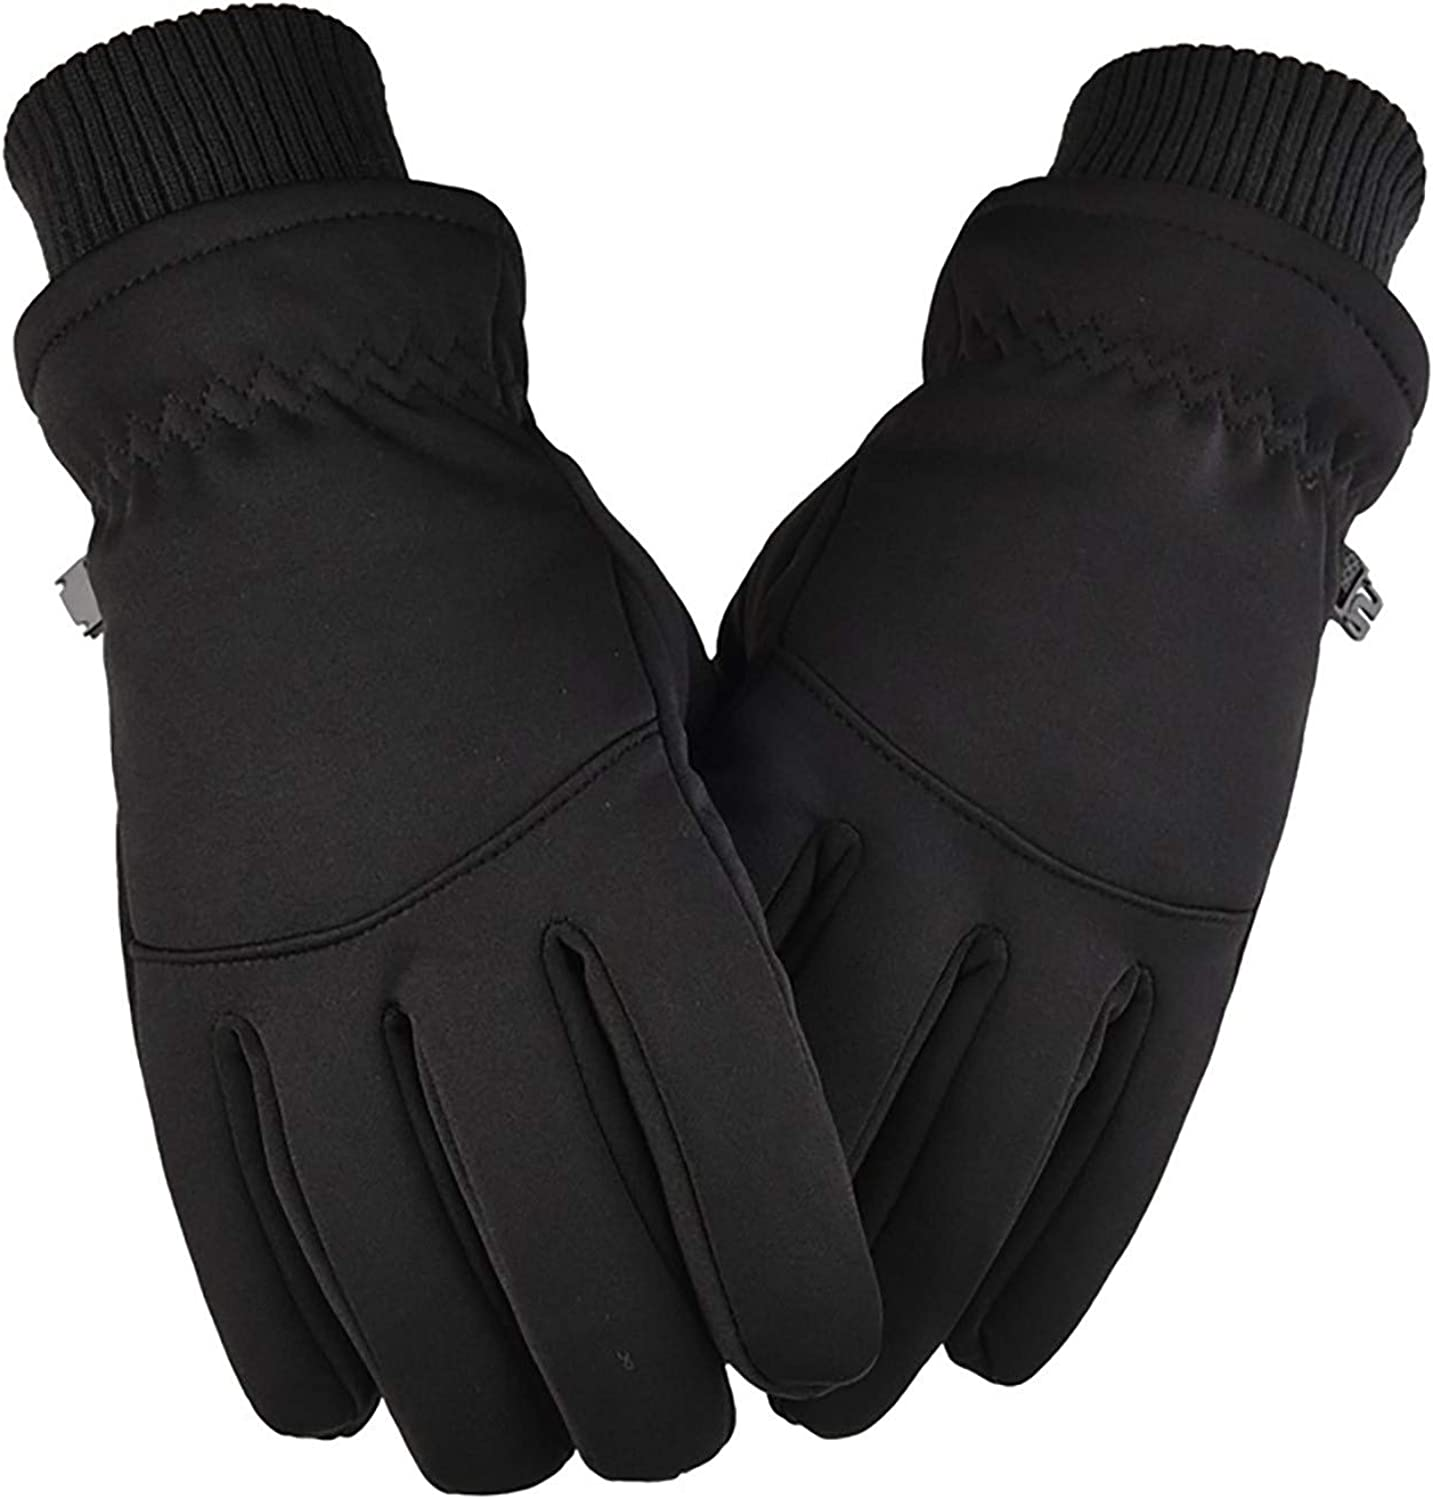 Winter Gloves for Men,Waterproof Thermal Gloves Cold Weather Gloves for Running Cycling Hiking Driving